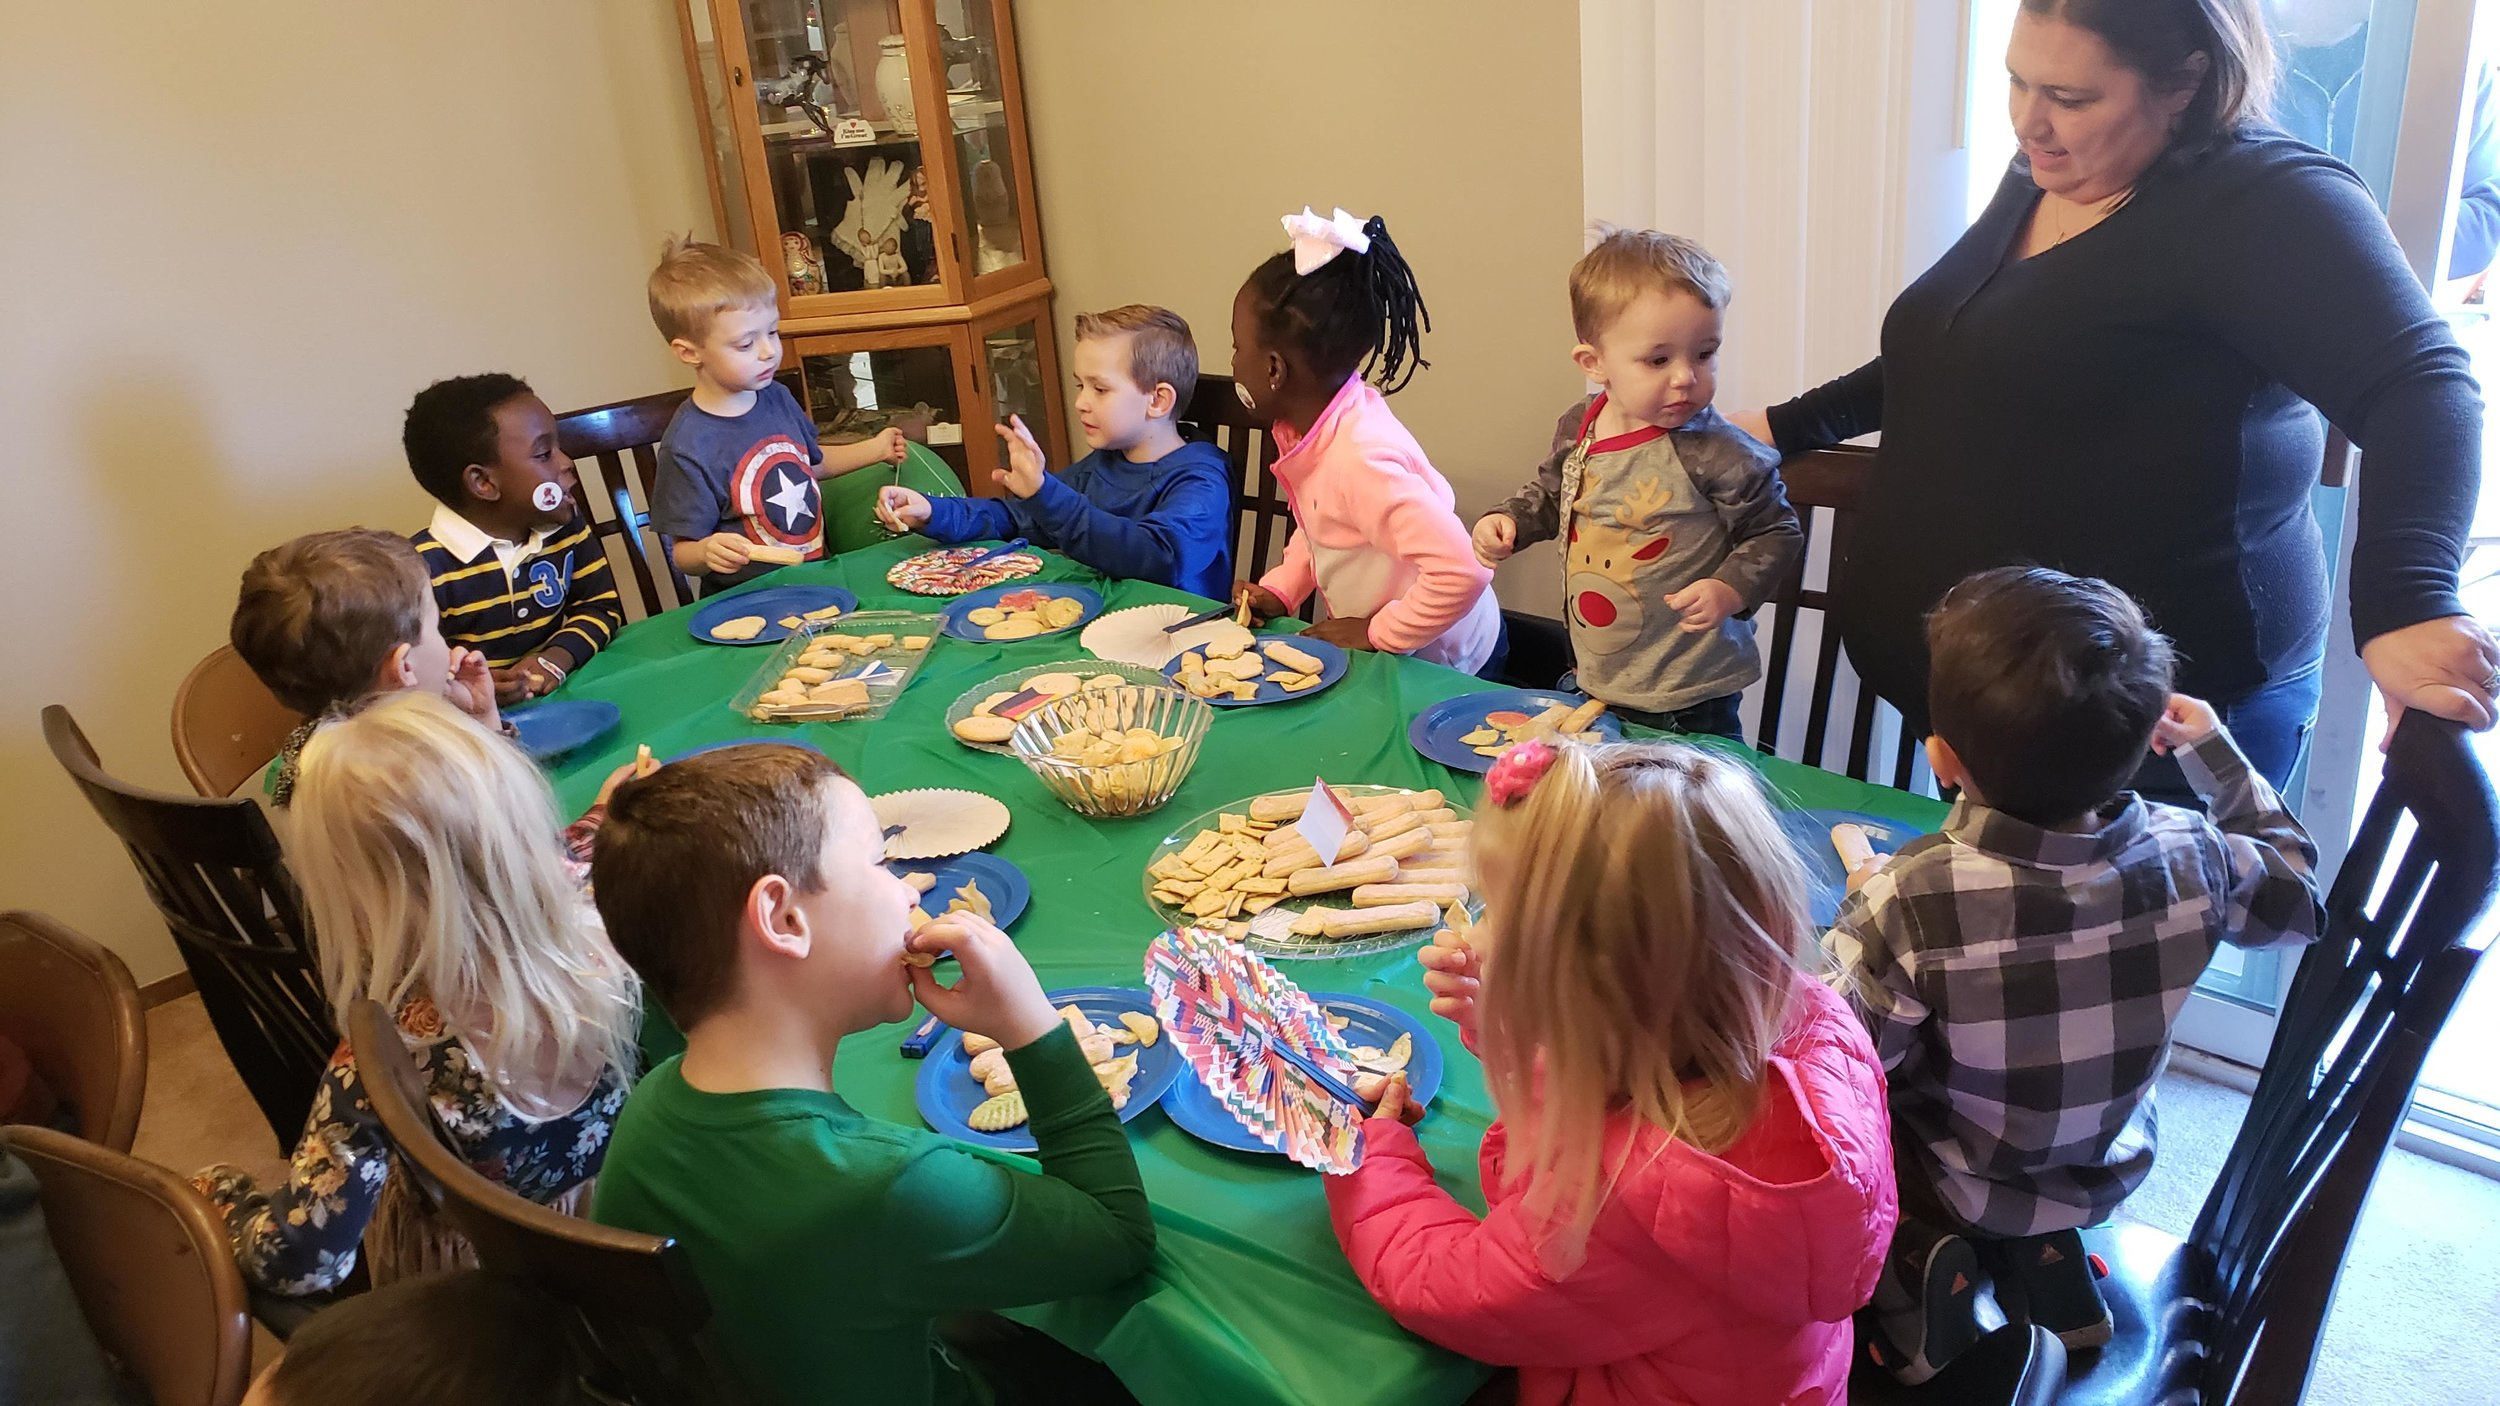 Finally, it was time to take our guests to Europe for an assortment of yummy snacks, which all the kids seemed to enjoy!